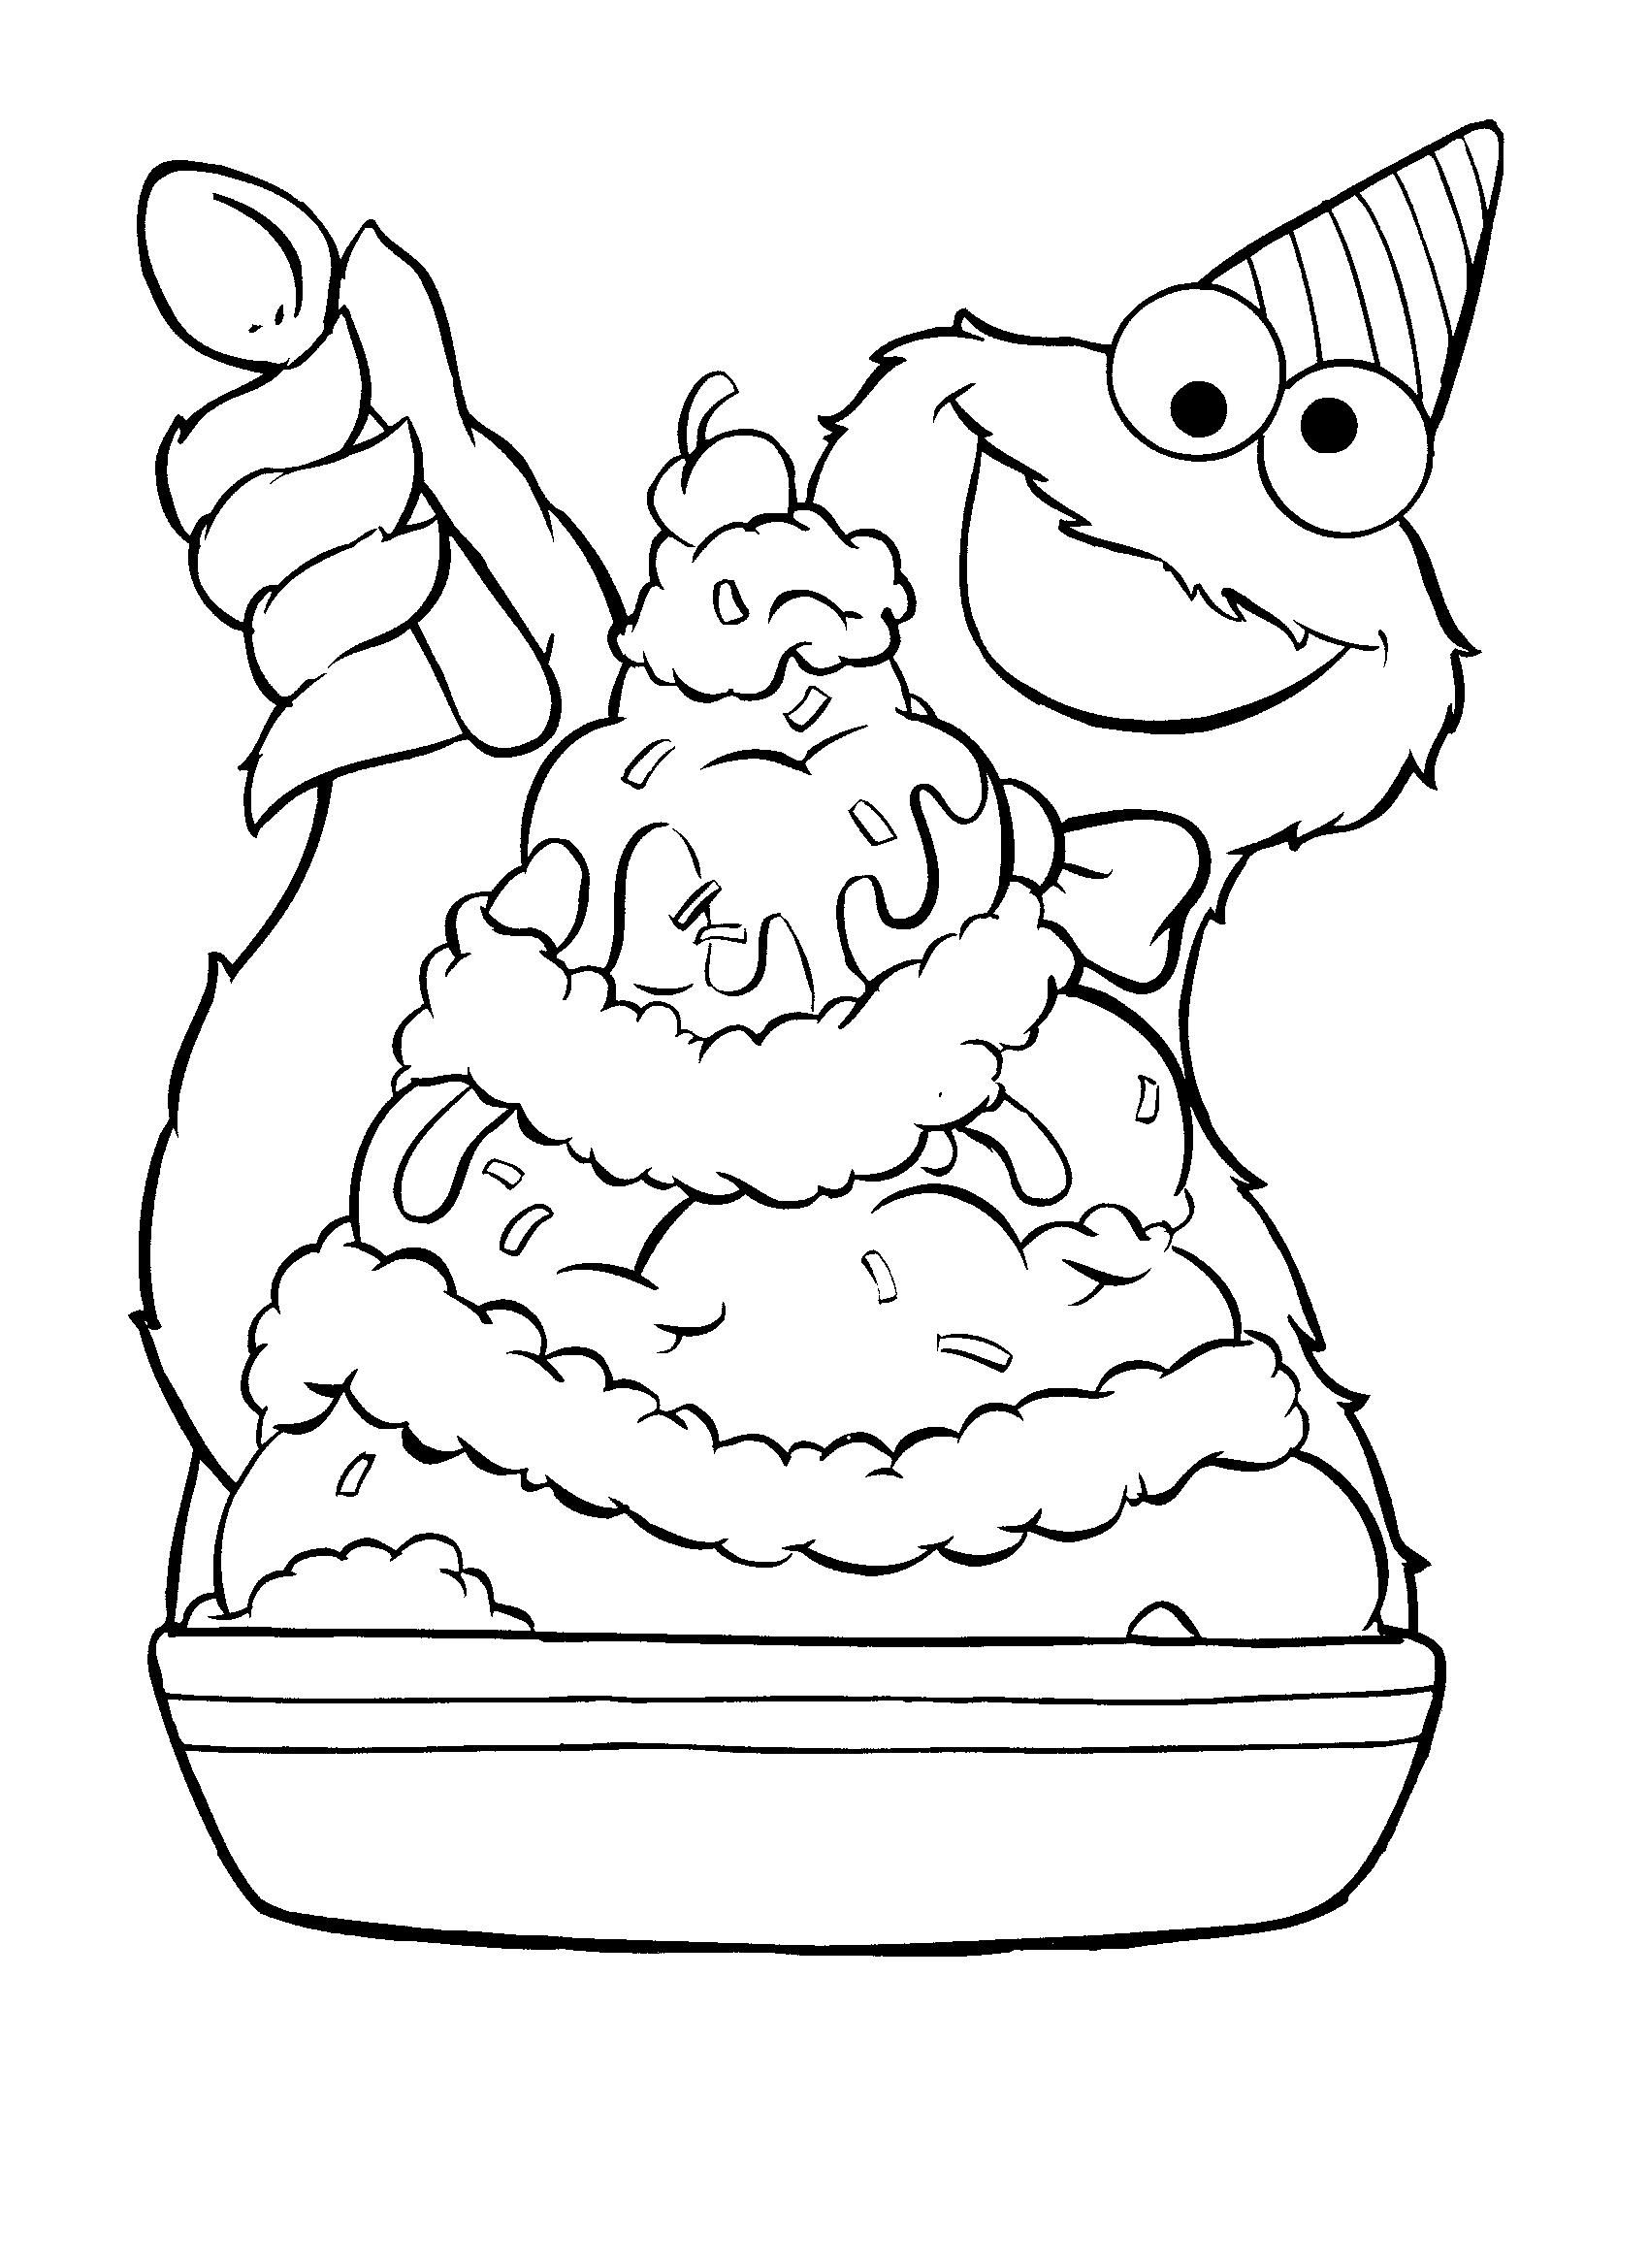 Free coloring pages ice cream sundae - Cookie Monster Ice Cream Sundae Coloring Pages